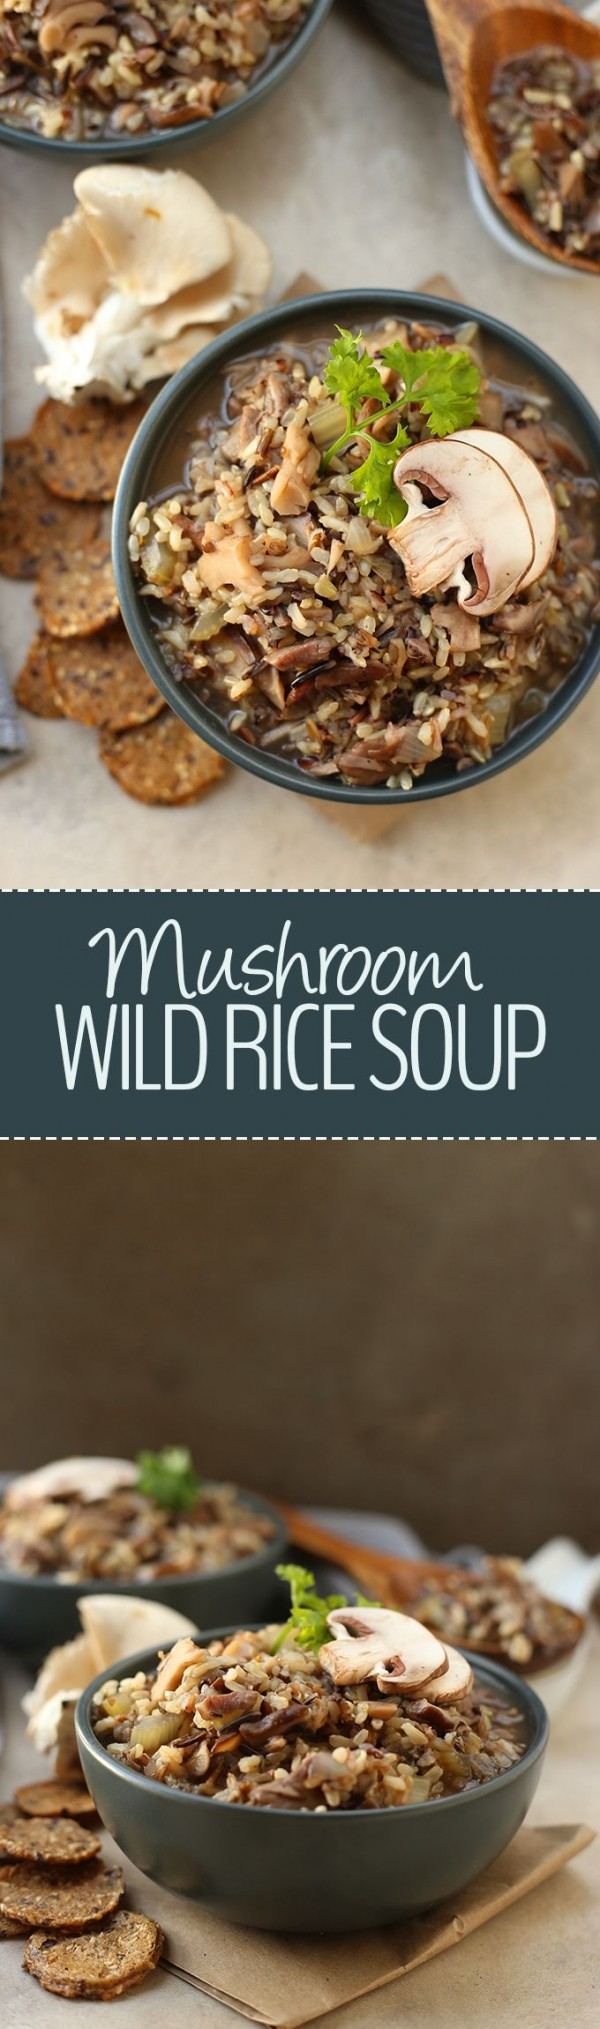 Get the #recipe #Mushroom Wild Rise #Soup @recipes_to_go